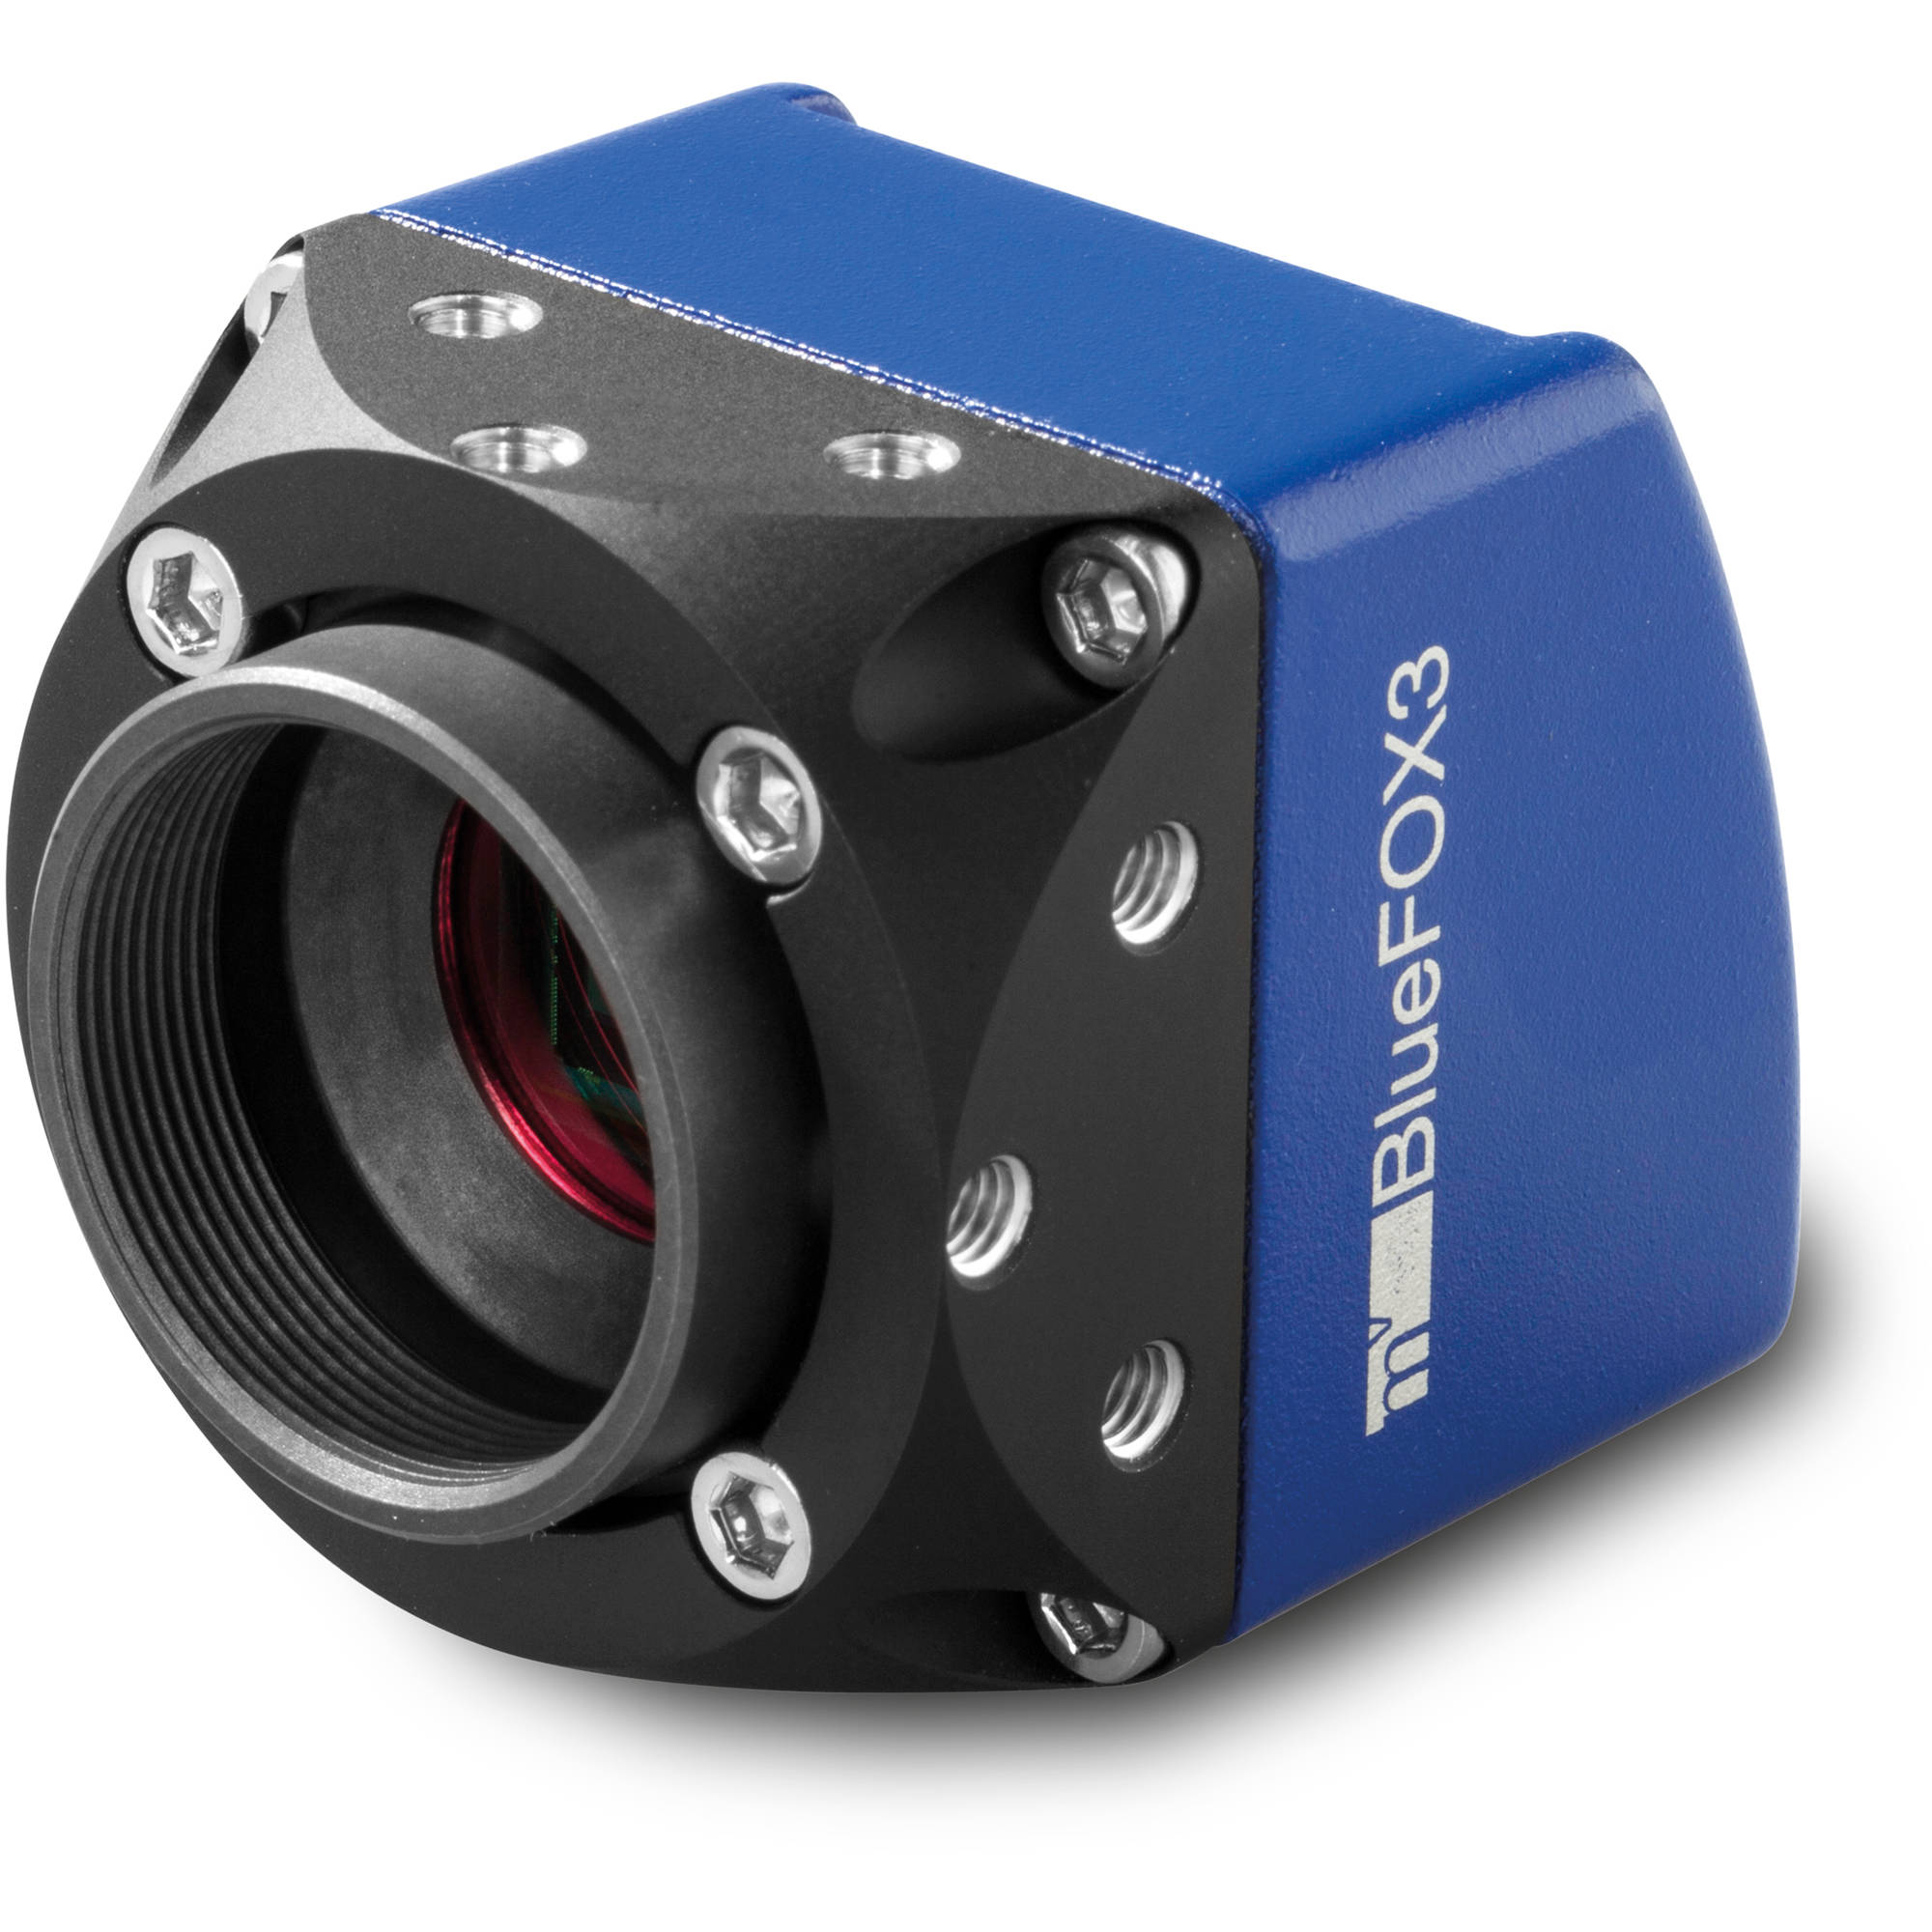 BlueFox3 USB3 Vision Camera (8 9MP, 32 2 Hz, Monochrome)